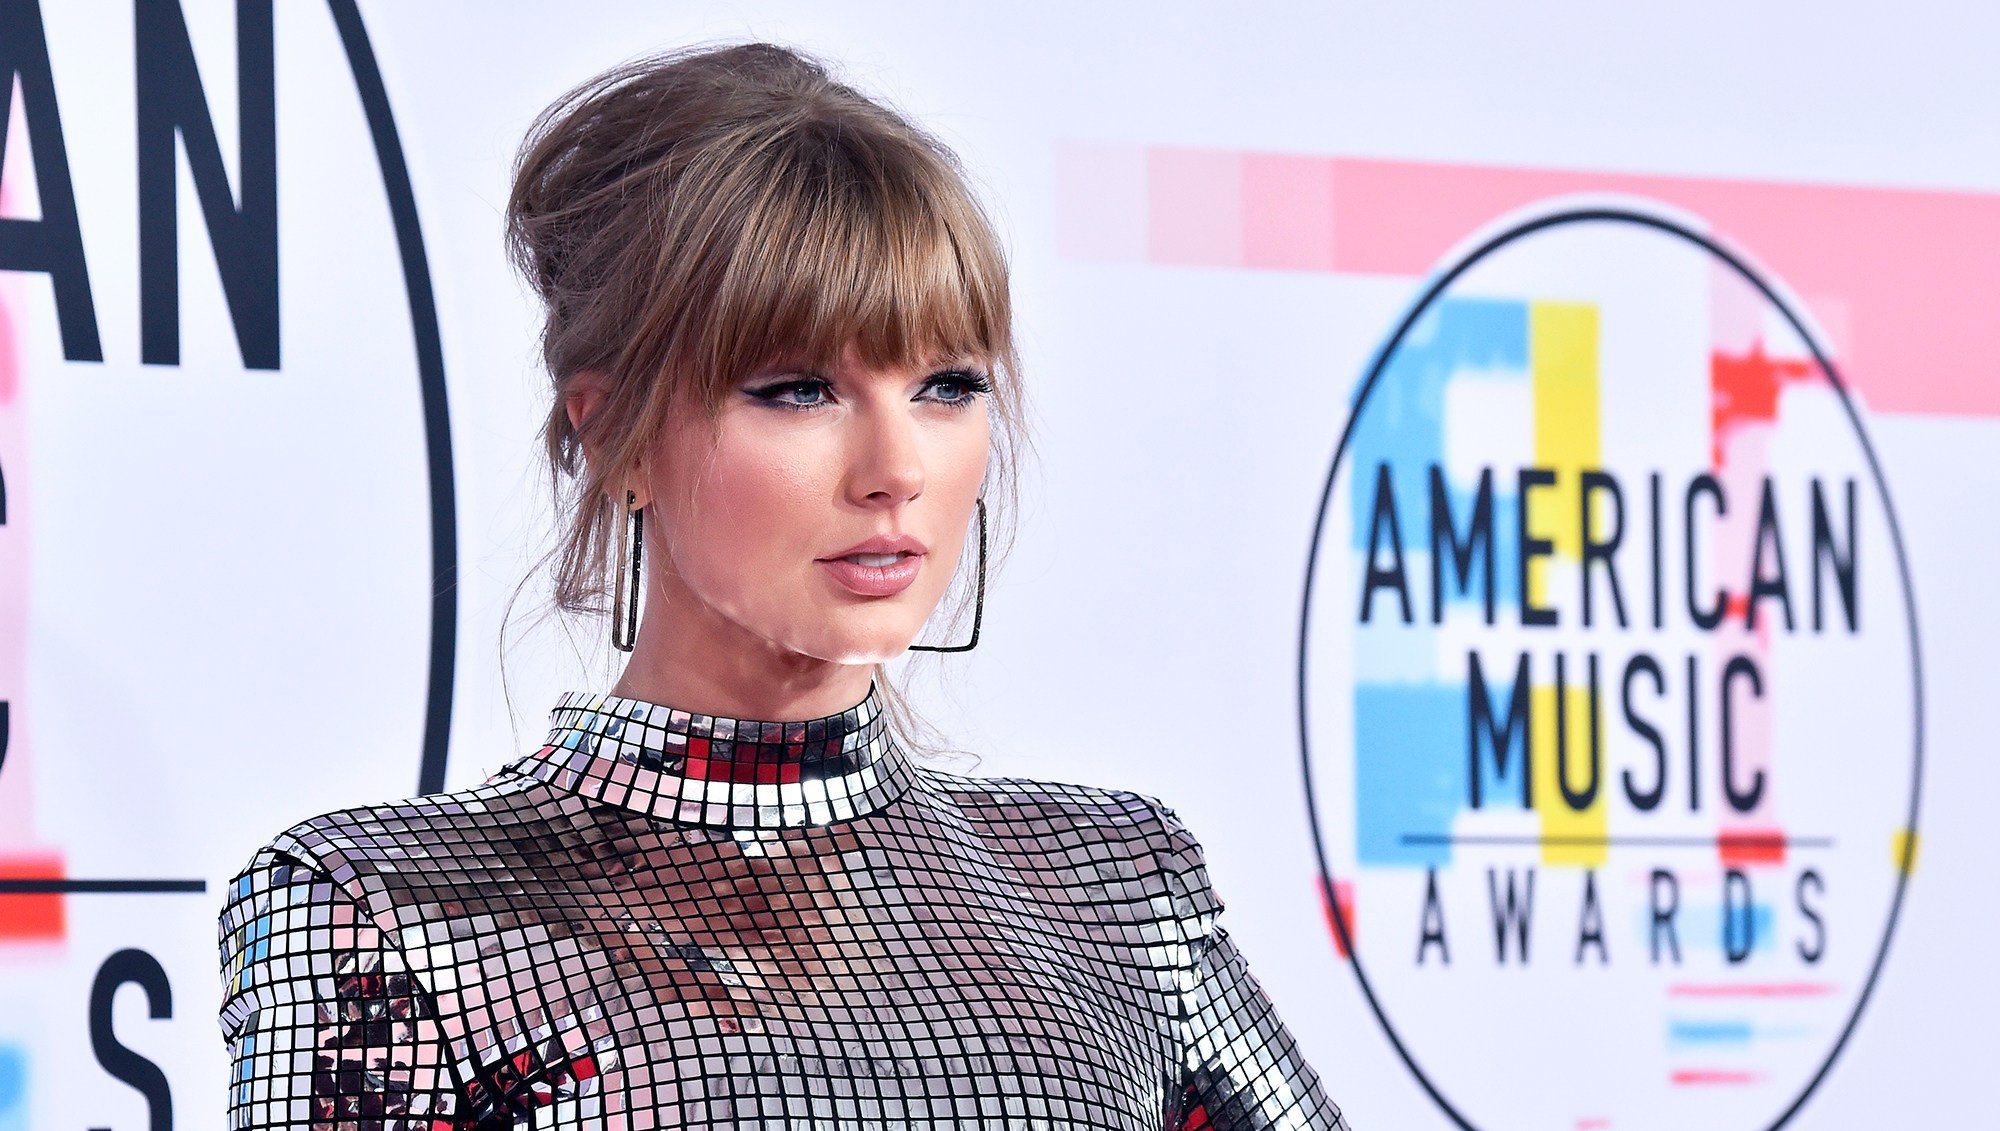 Taylor Swift Changes Record Labels 13 Years After Signing With Big Machine: 'My New Home'